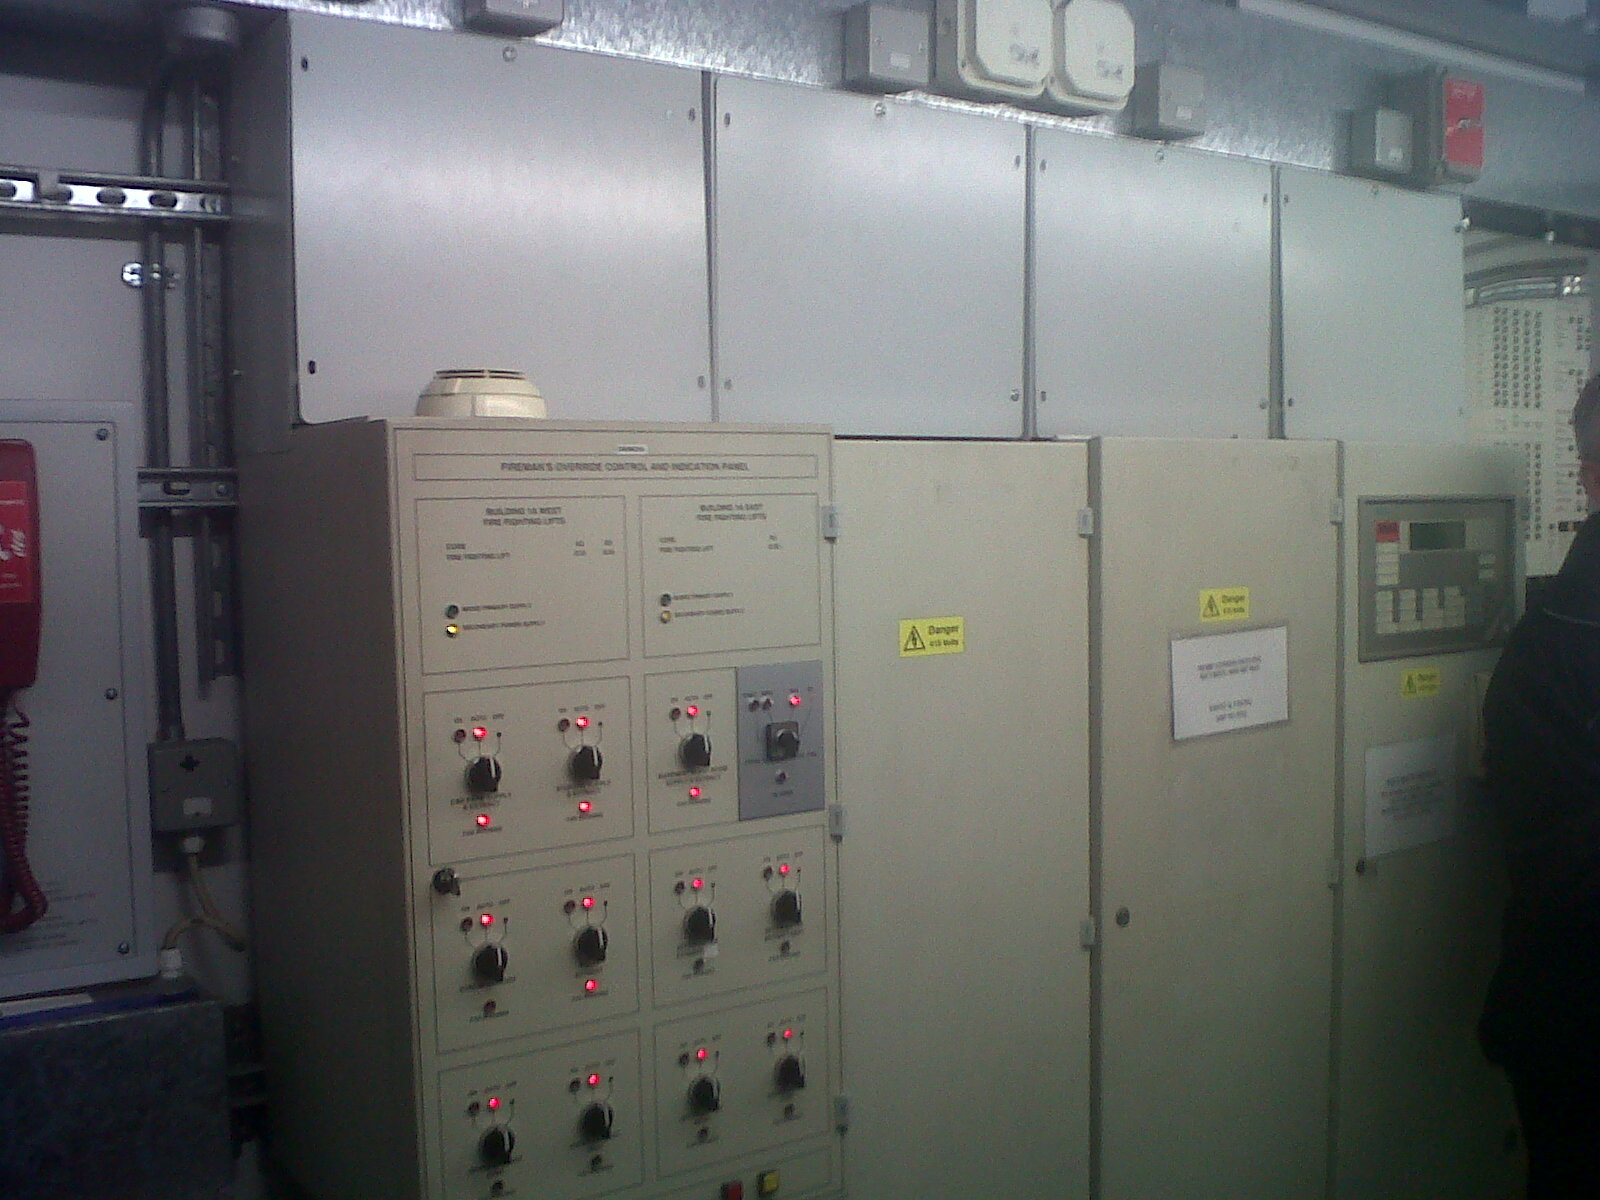 SENSECO REPLACE SIEMENS ALGOREX TO CERBERUS PRO IN A SINGLE WEEKEND